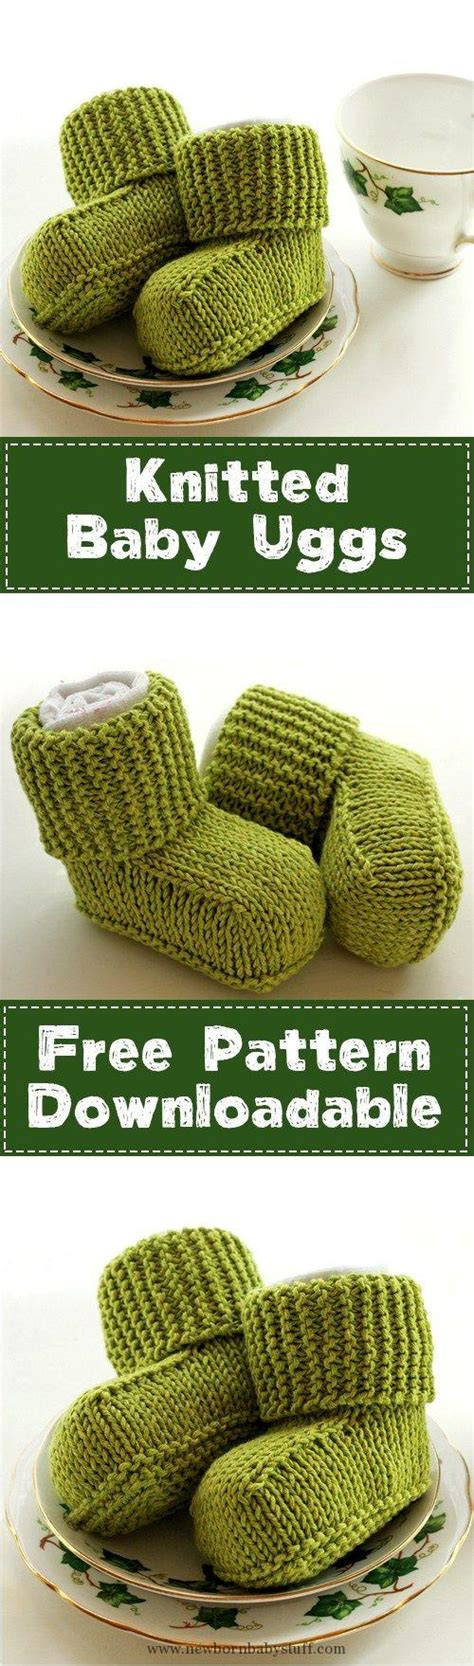 knitting patterns pdf free baby knitting patterns downloadable pdf free knitting